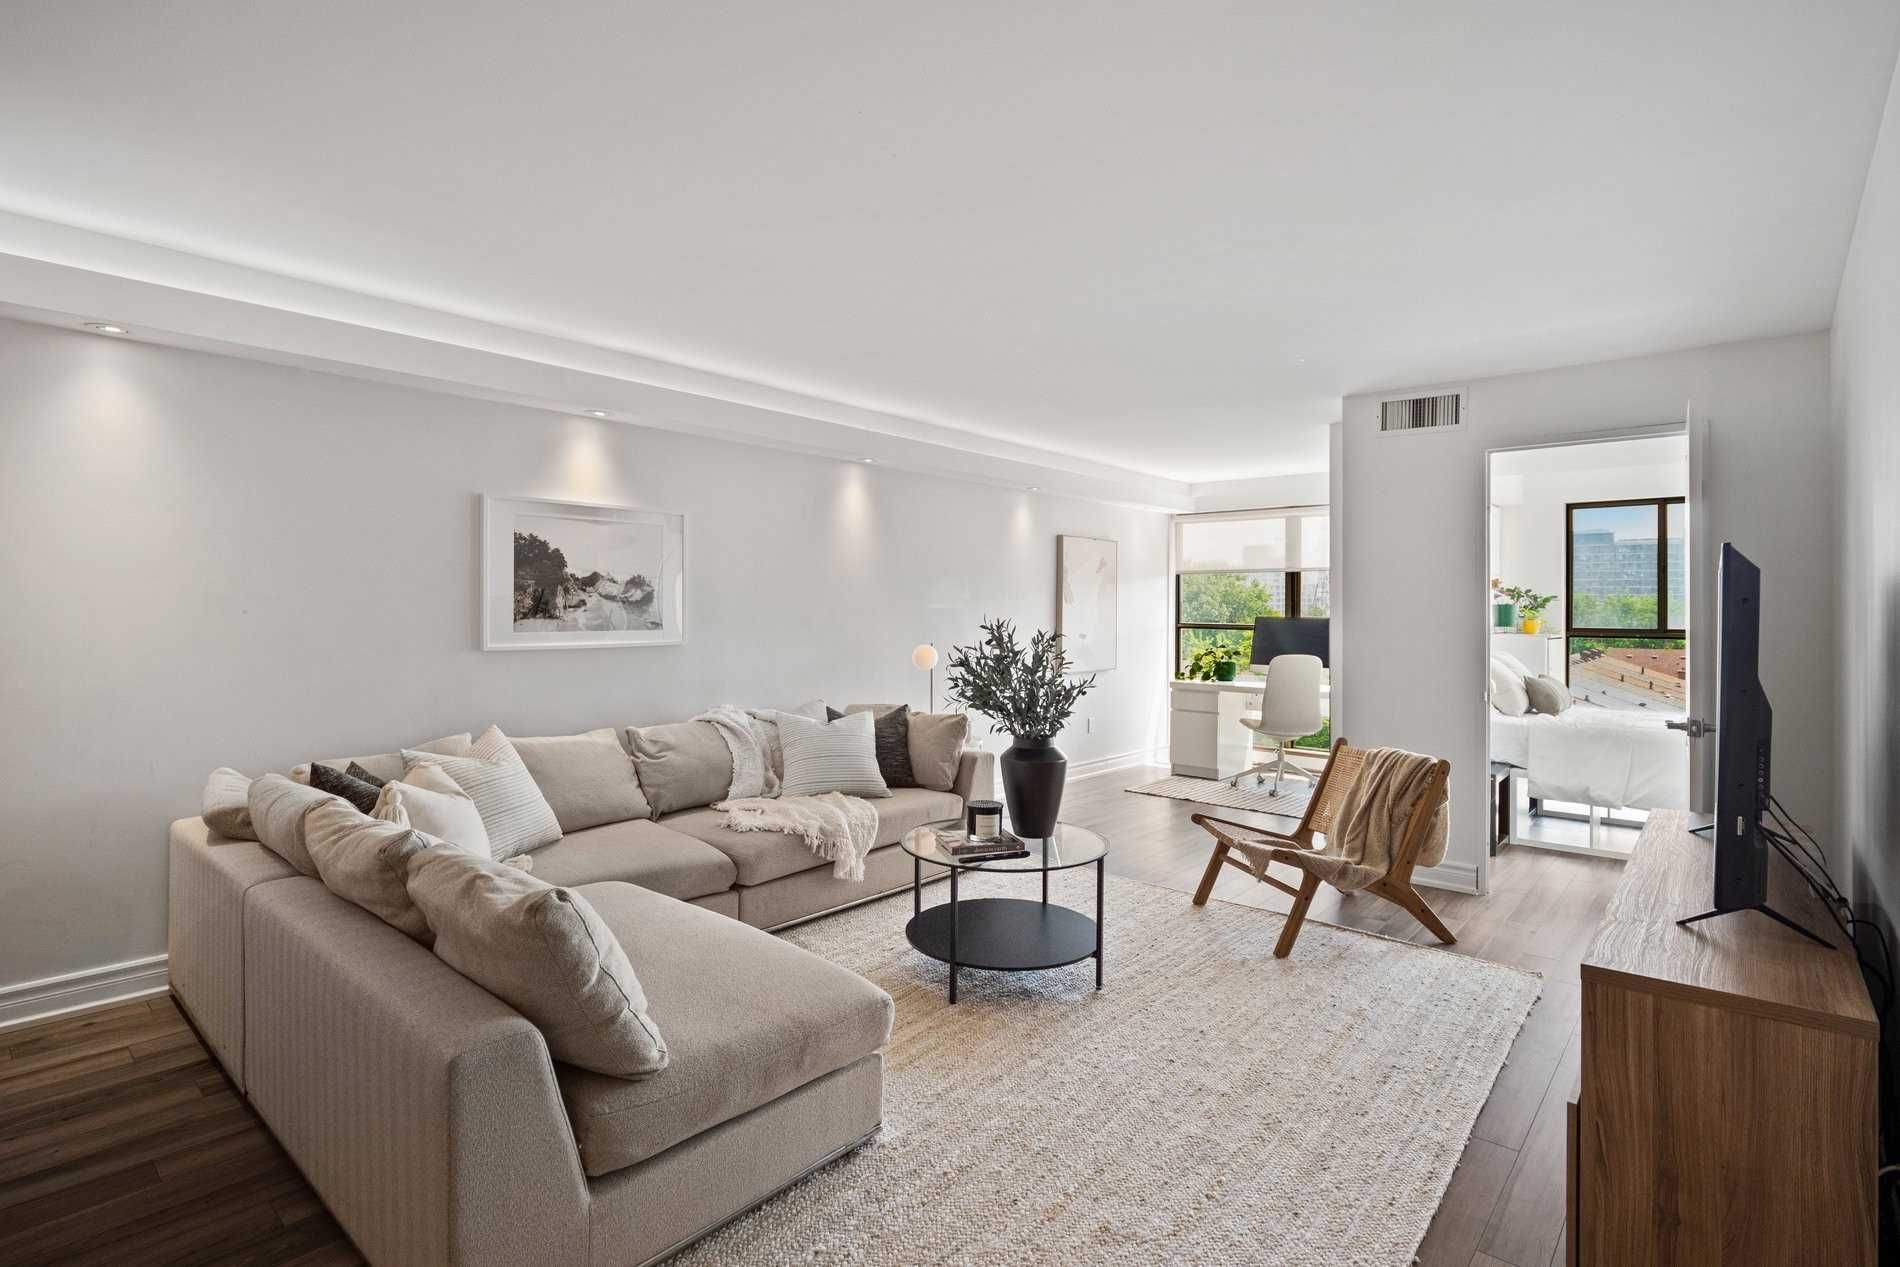 65 Scadding Ave, unit 610 for sale in Toronto - image #2